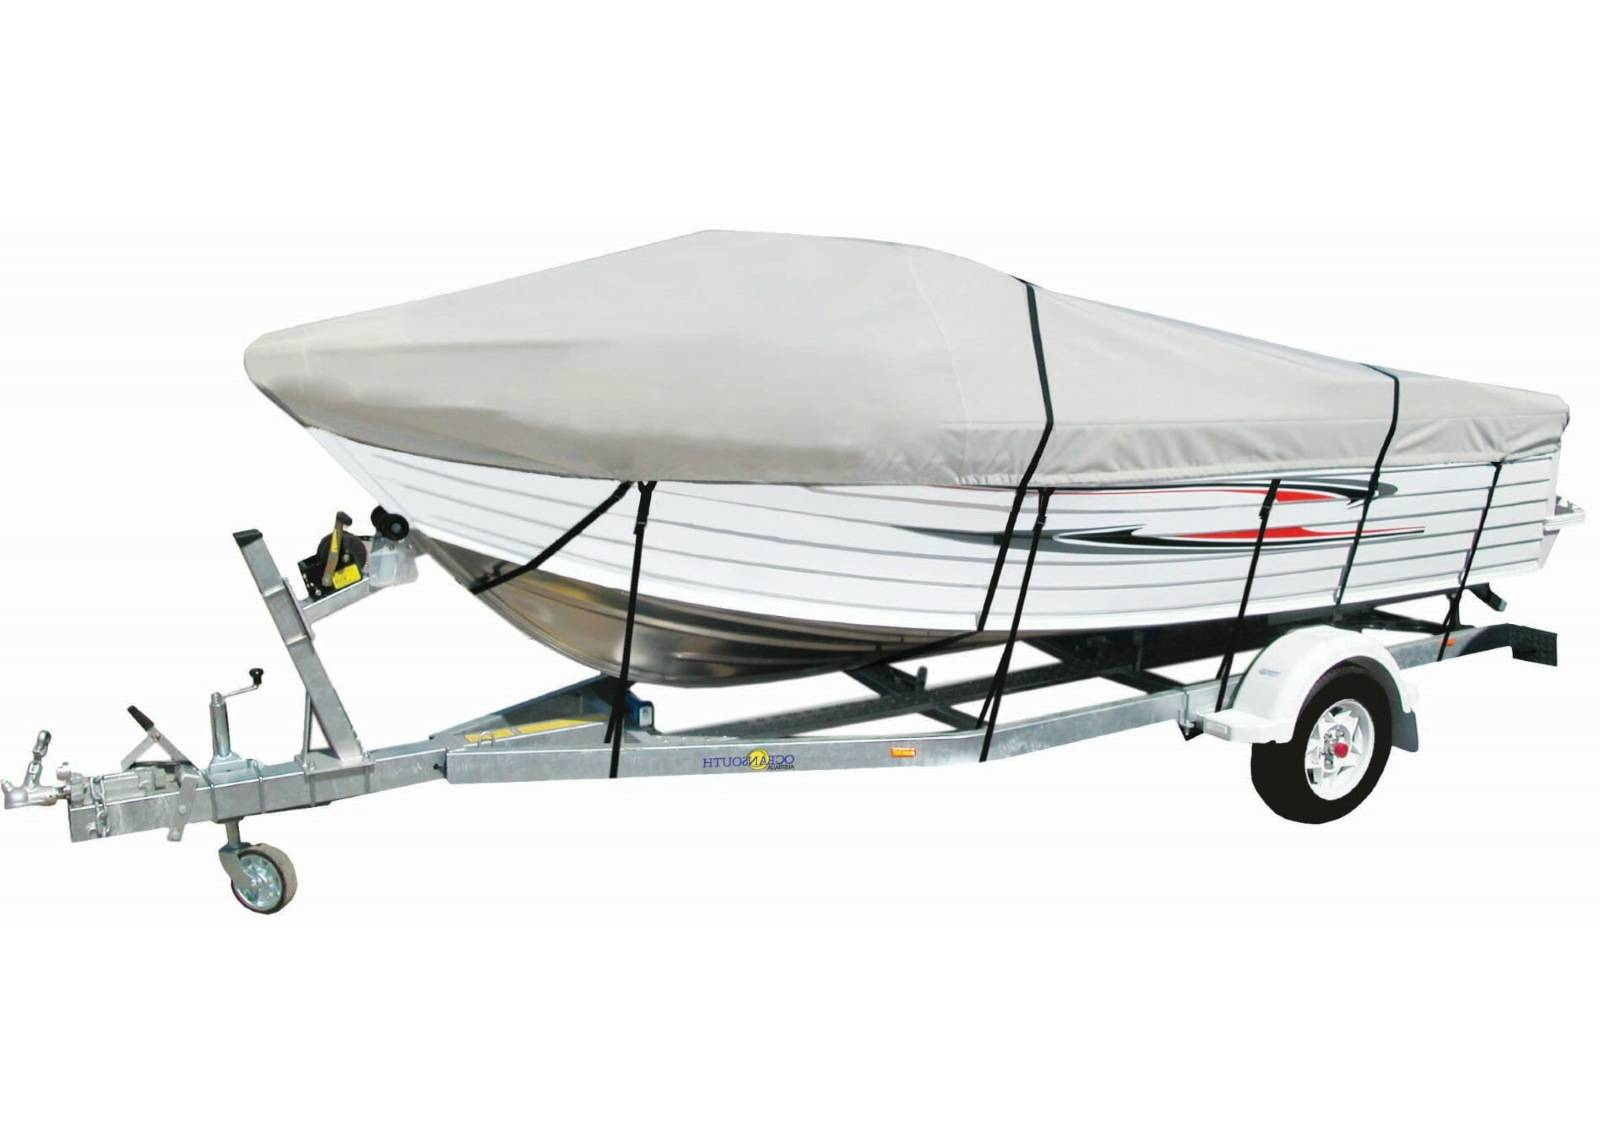 OceanSouth Venepeite Runabout tyyppisille veneille 5.0-5.3 m